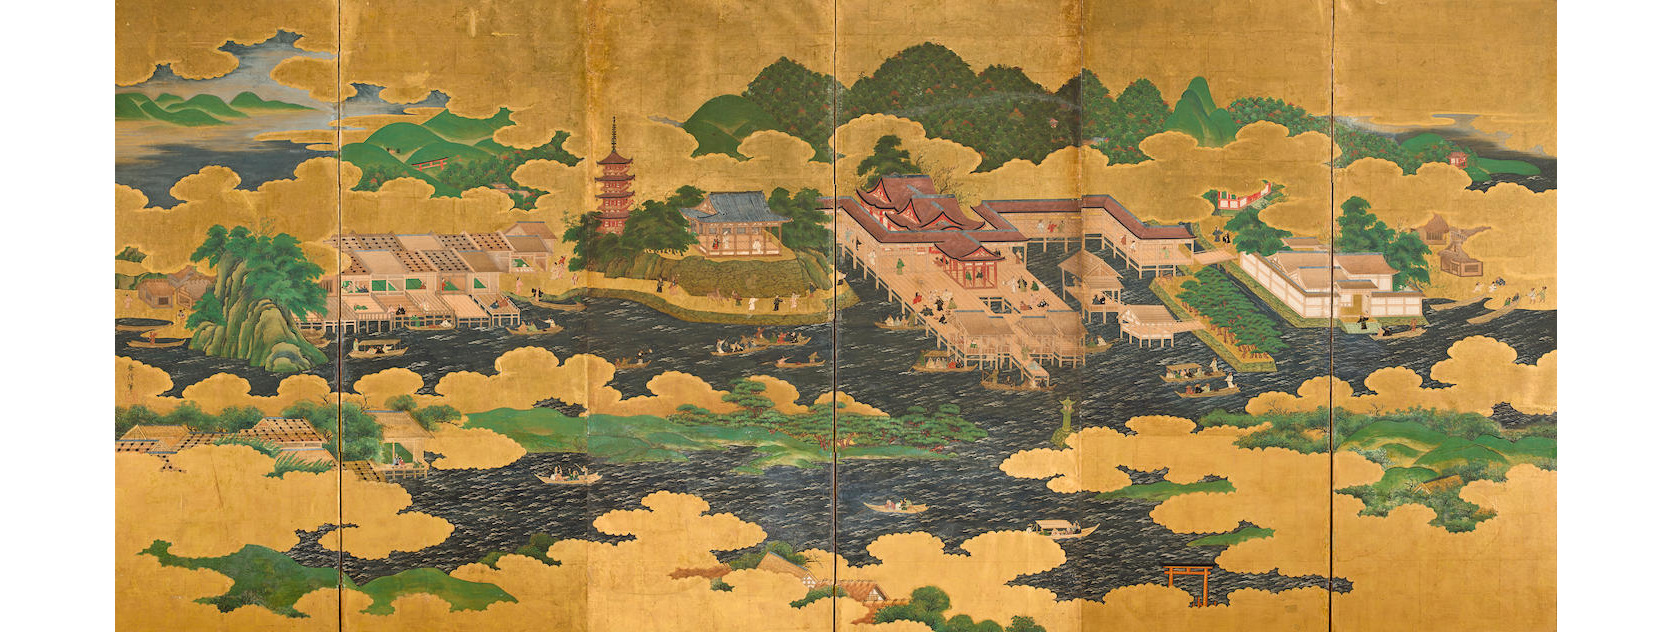 Kano Masunobu (Japanese, 1625-1694), Itsukushima Shrine, n.d. ink, colors, and gold on paper. Joy Light East Asia Acquisitions and Exhibitions Fund, 2011.8.1